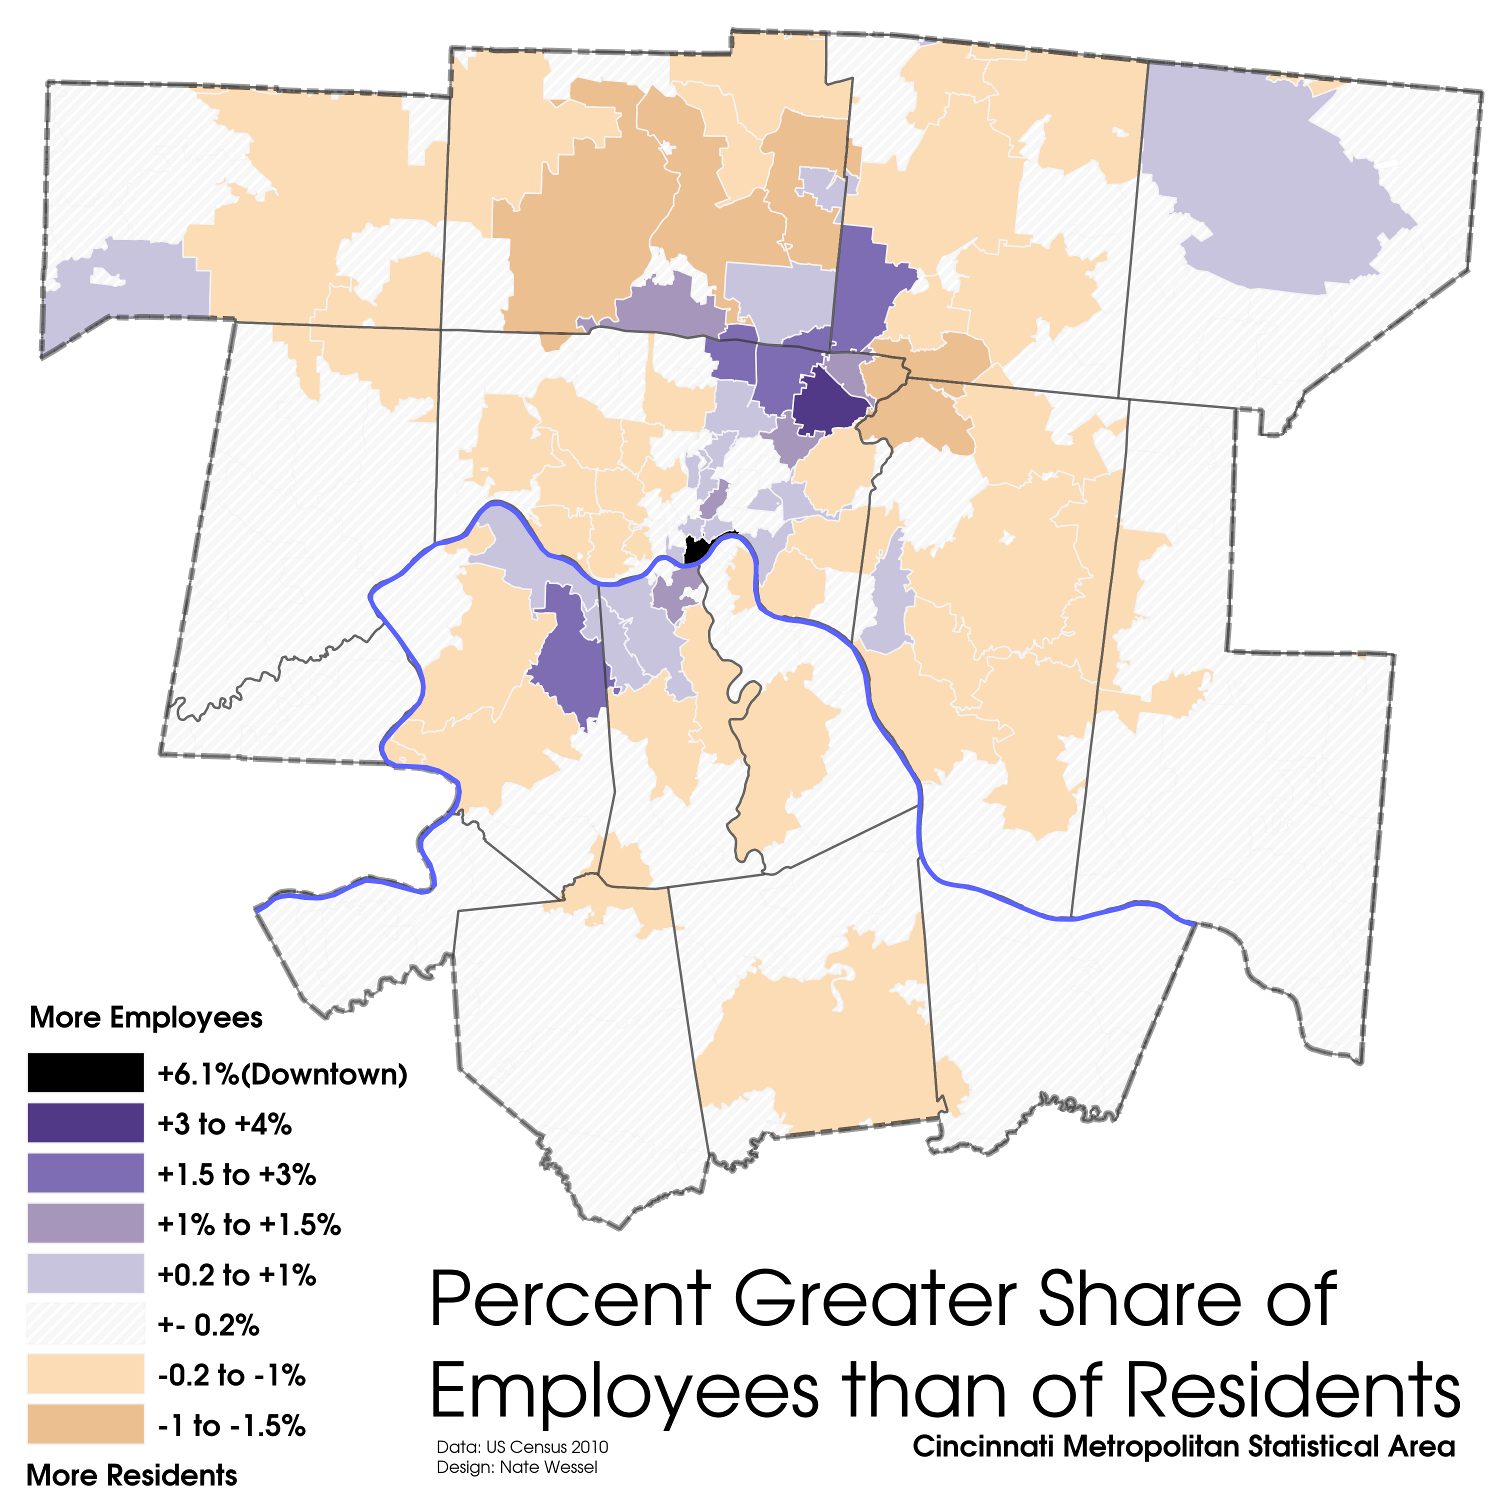 Cincinnati Employment/Population Share